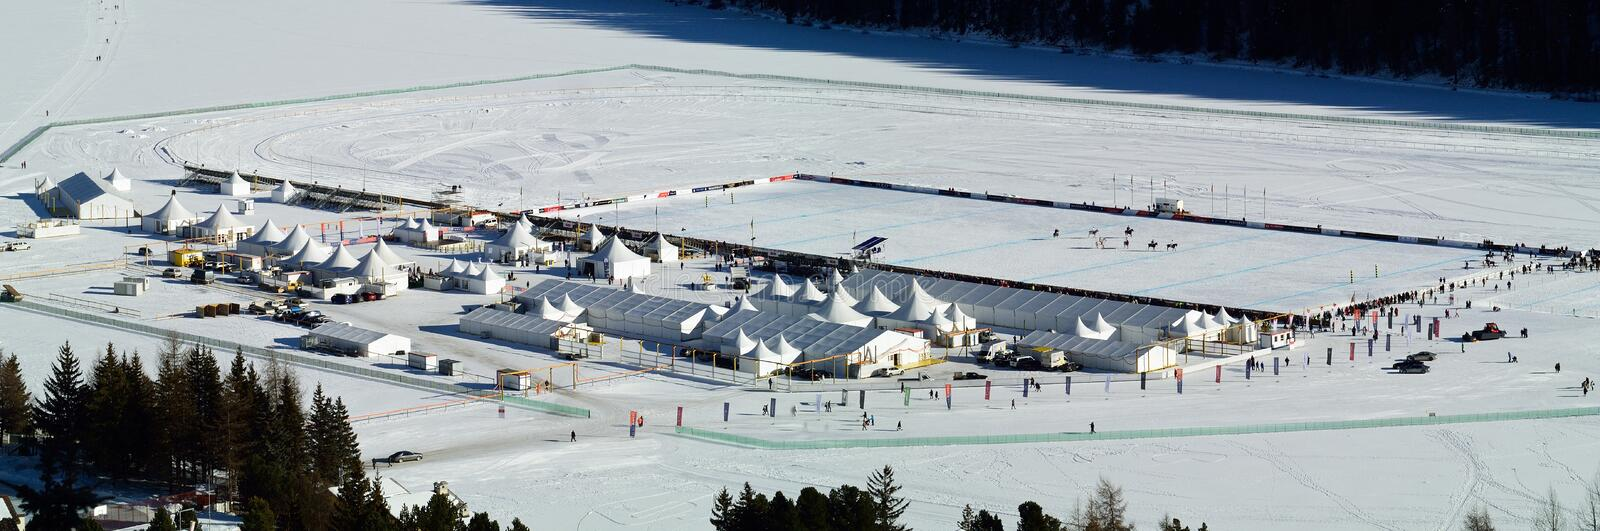 Snow Polo Lake Area. The playground for Snow Polo World Cup 2016 on Sankt Moritzersee - Switzerland royalty free stock photo